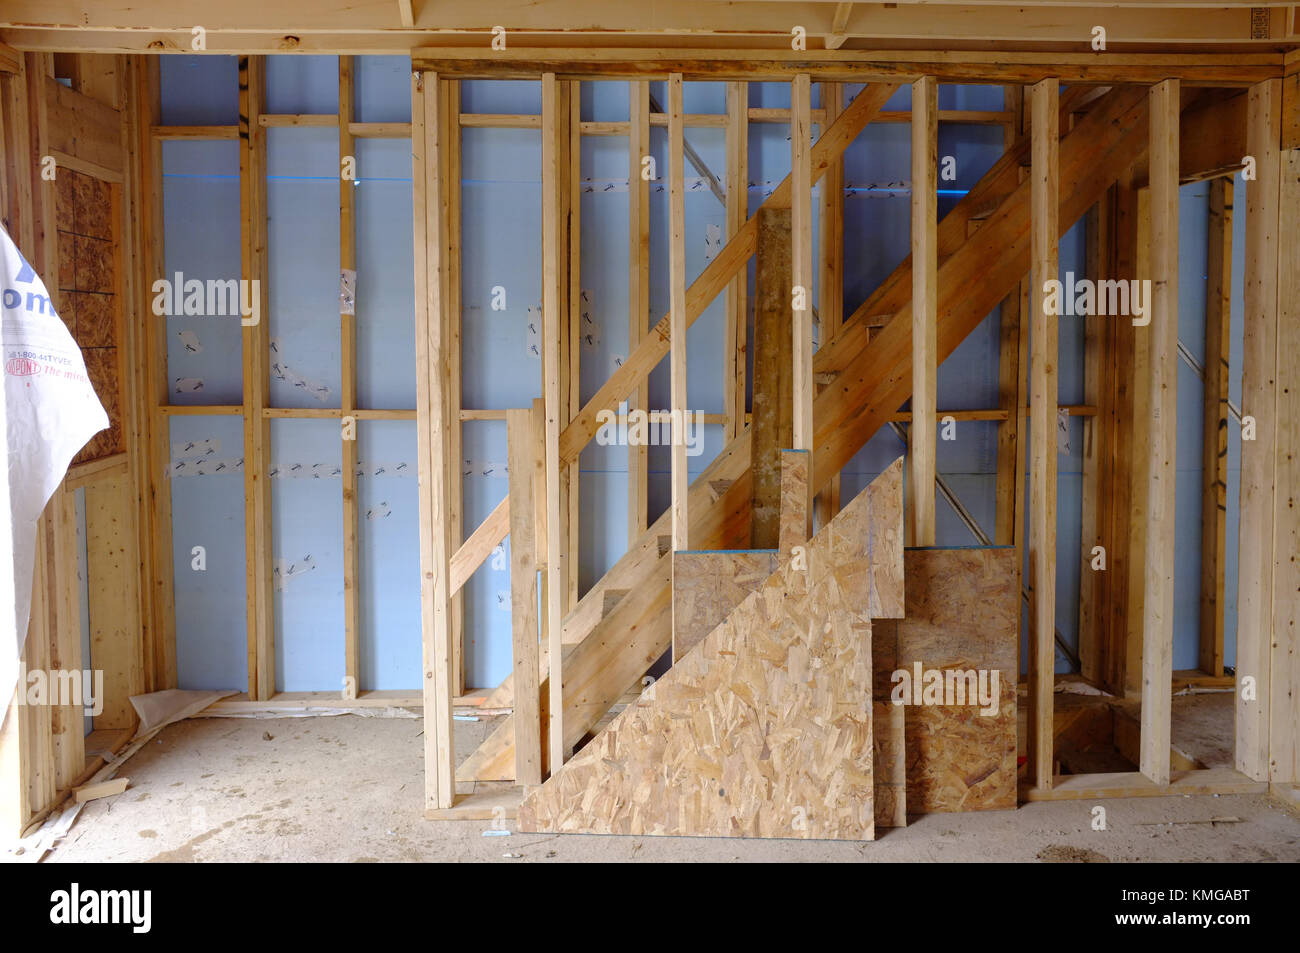 The Inside Of A House Under Construction In Ontario Canada Stock Photo Alamy